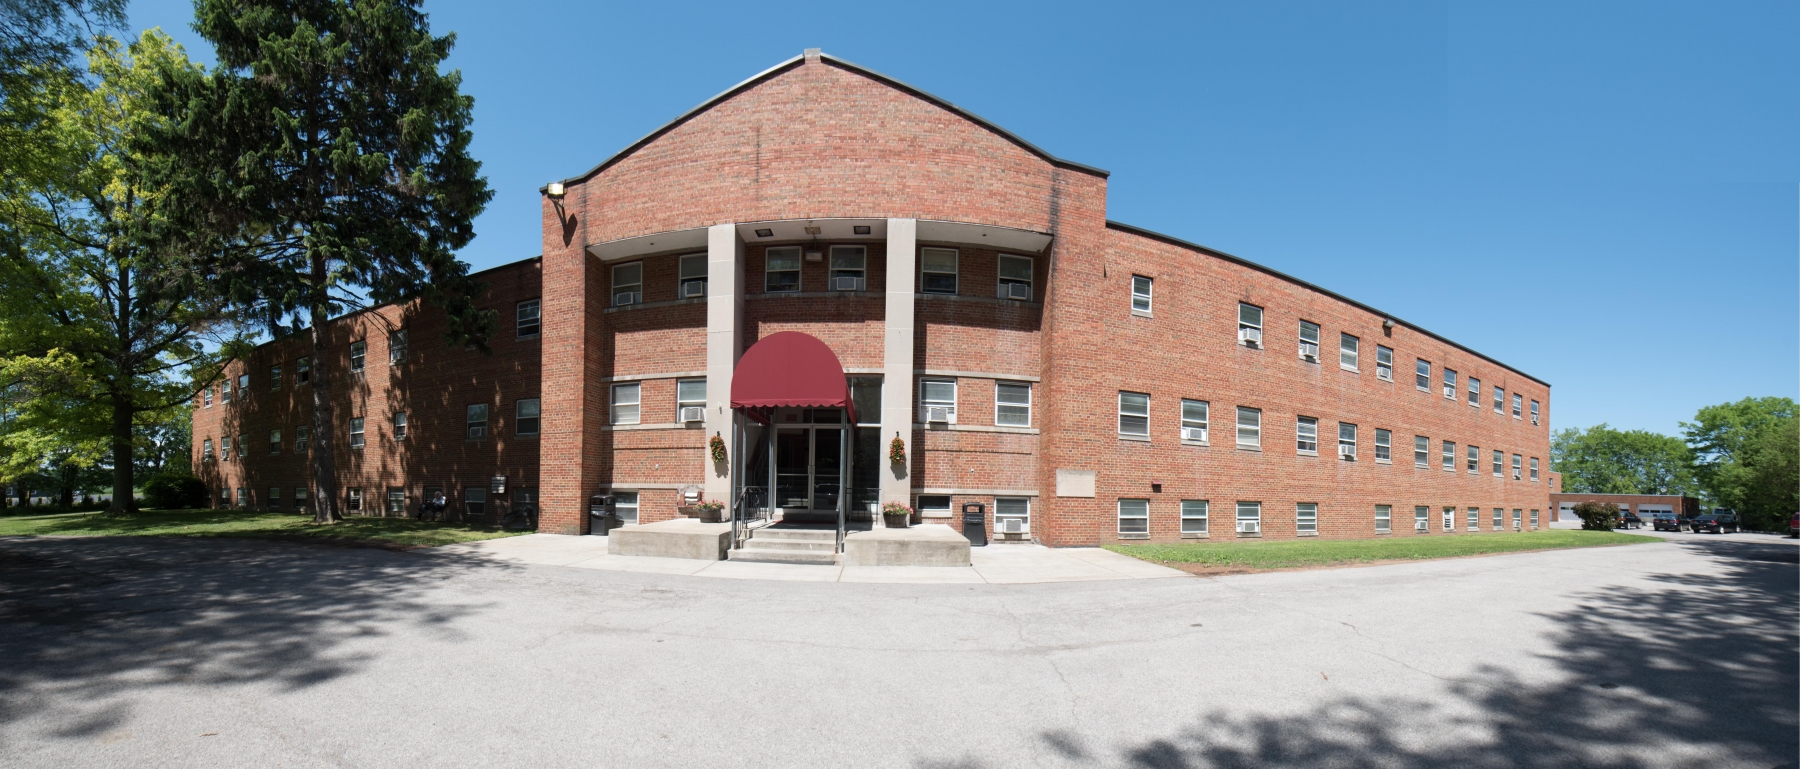 Leroy, NY Assisted Living Facility